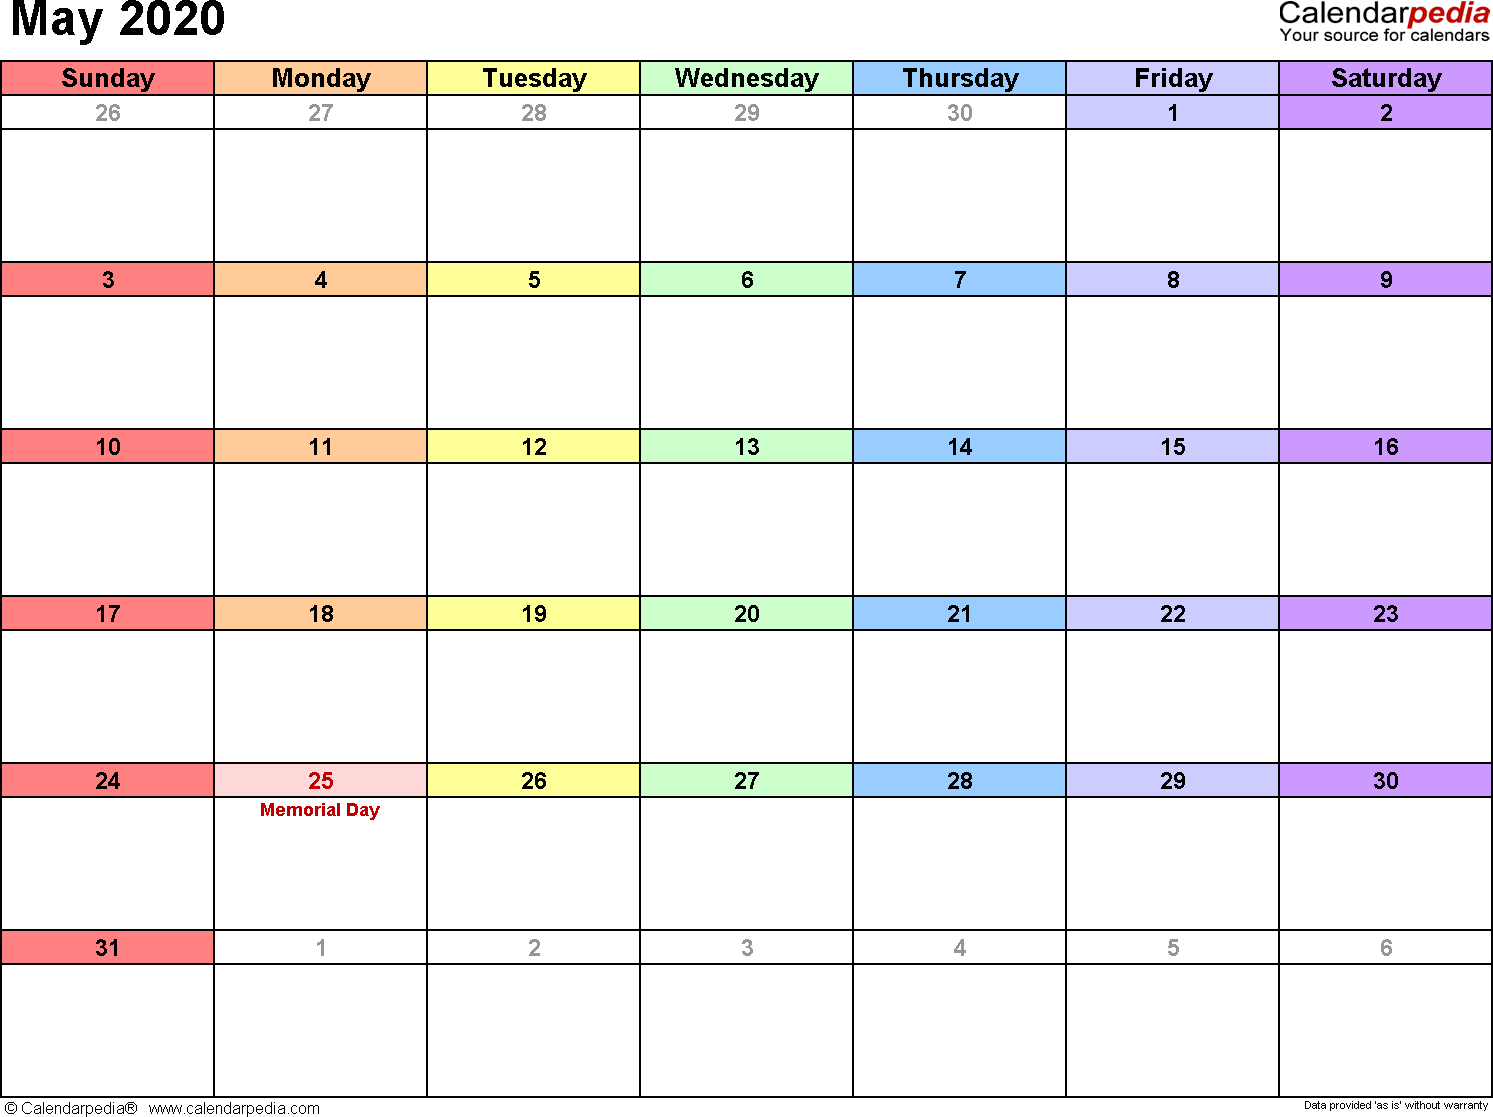 May 2020 Calendar Template May 2020 Calendars for Word, Excel & PDF